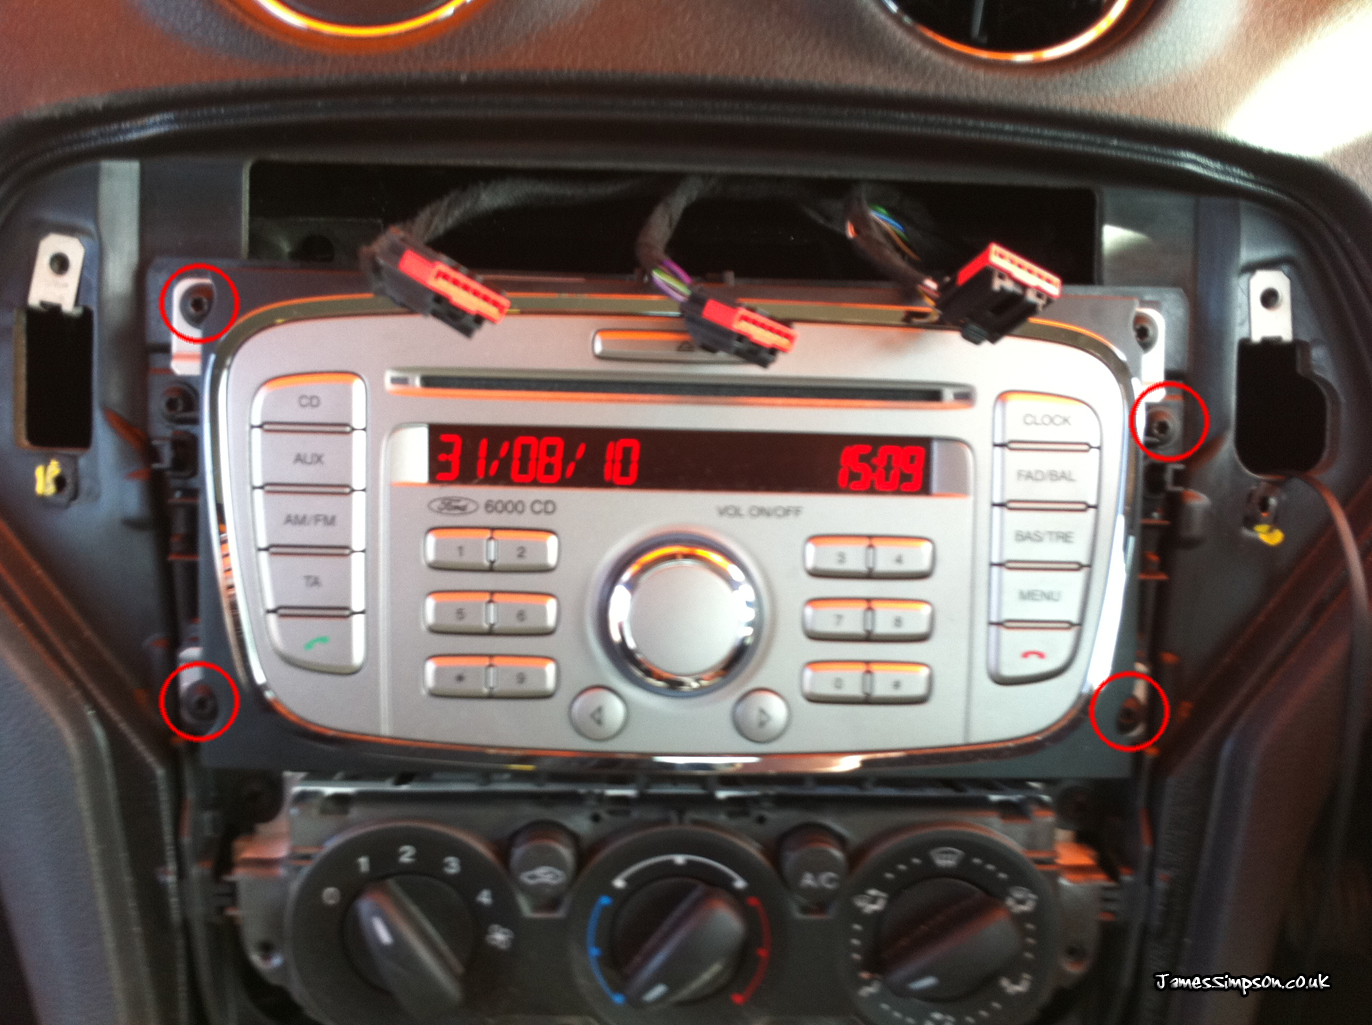 Ford Focus Mk1 Fuse Box Removal : Ford focus steering wheel removal